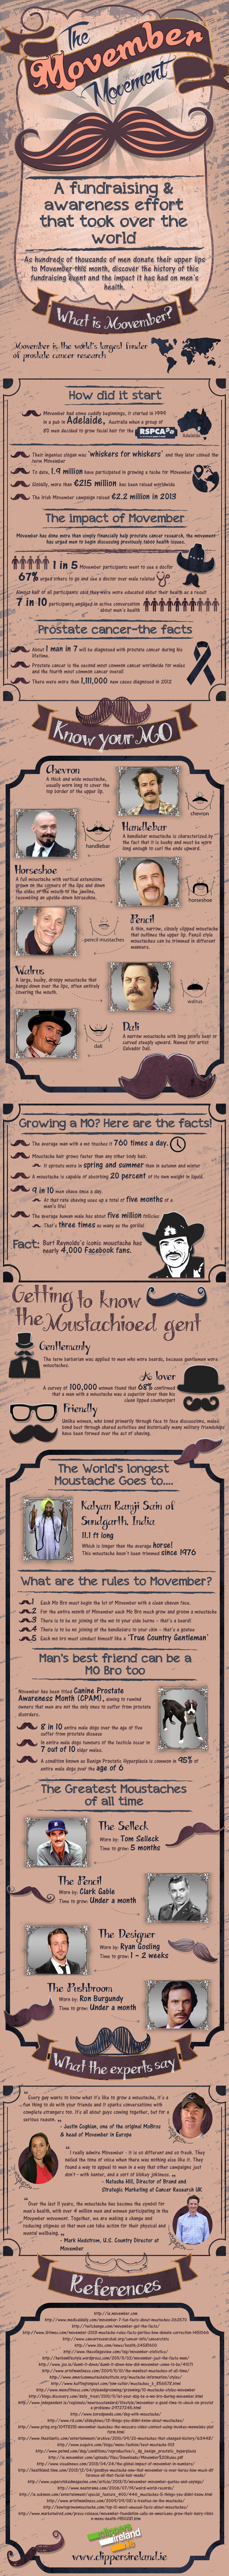 Movember – Do You Know Your Mo